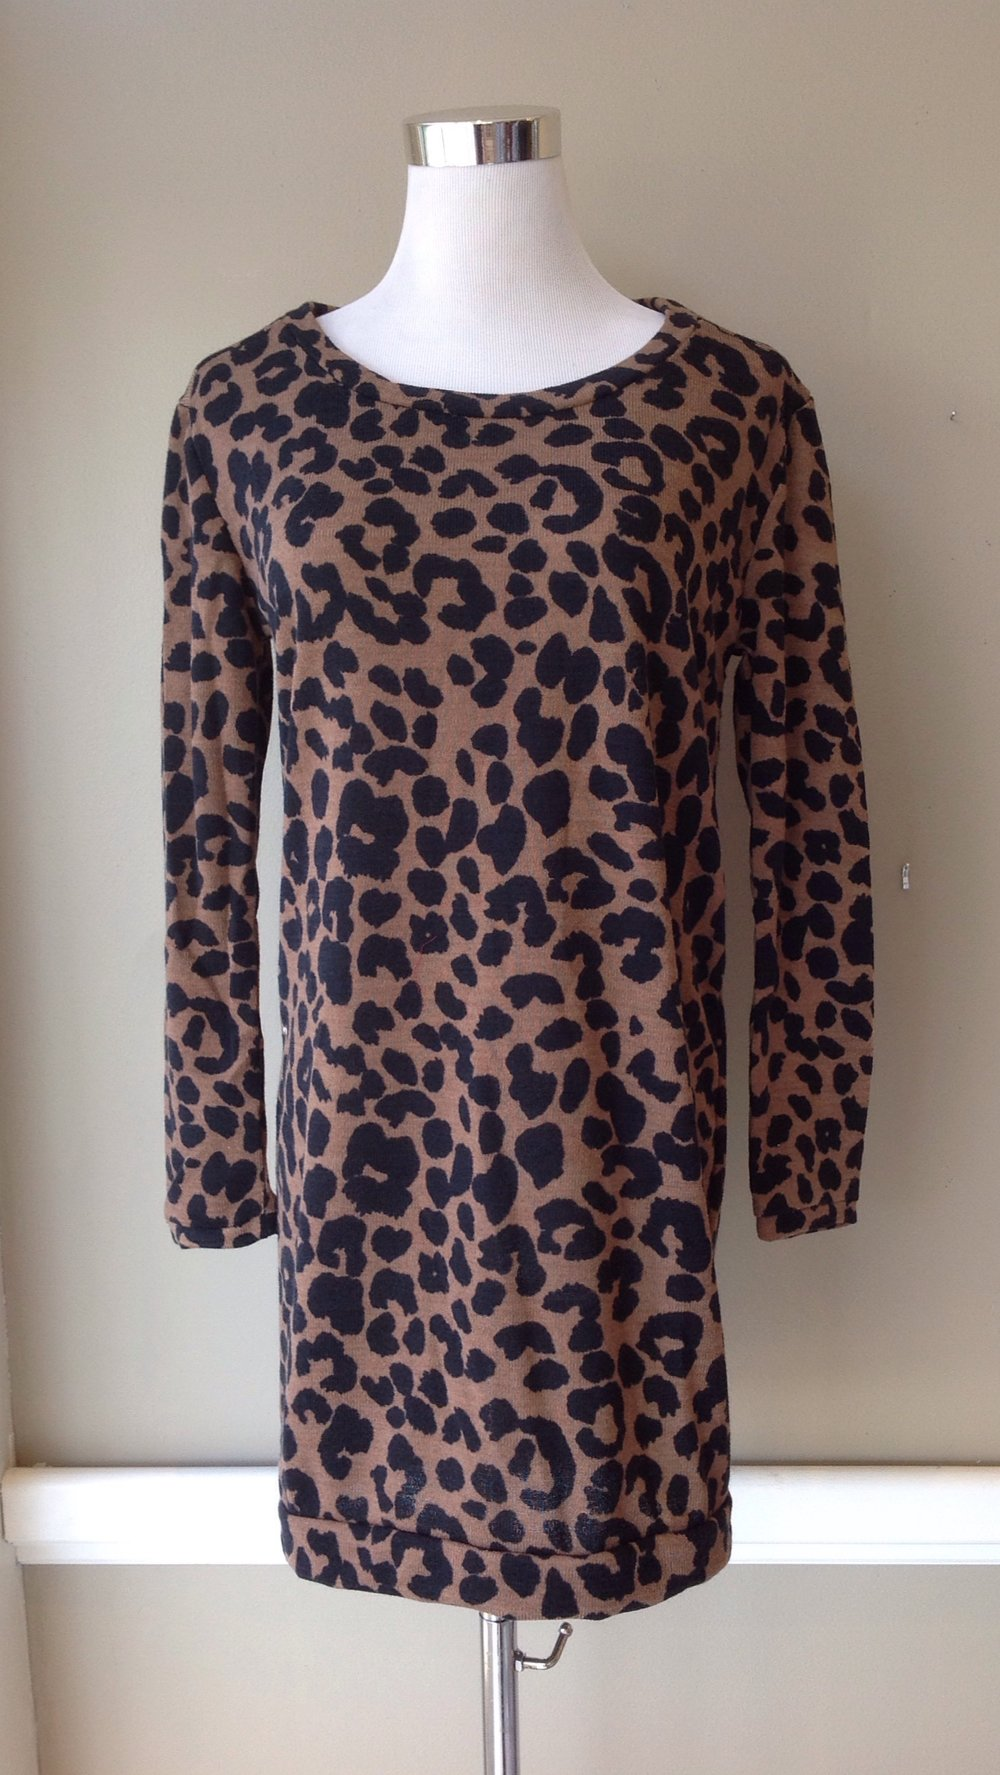 Sweater knit tunic dress in brown/black animal print, $35